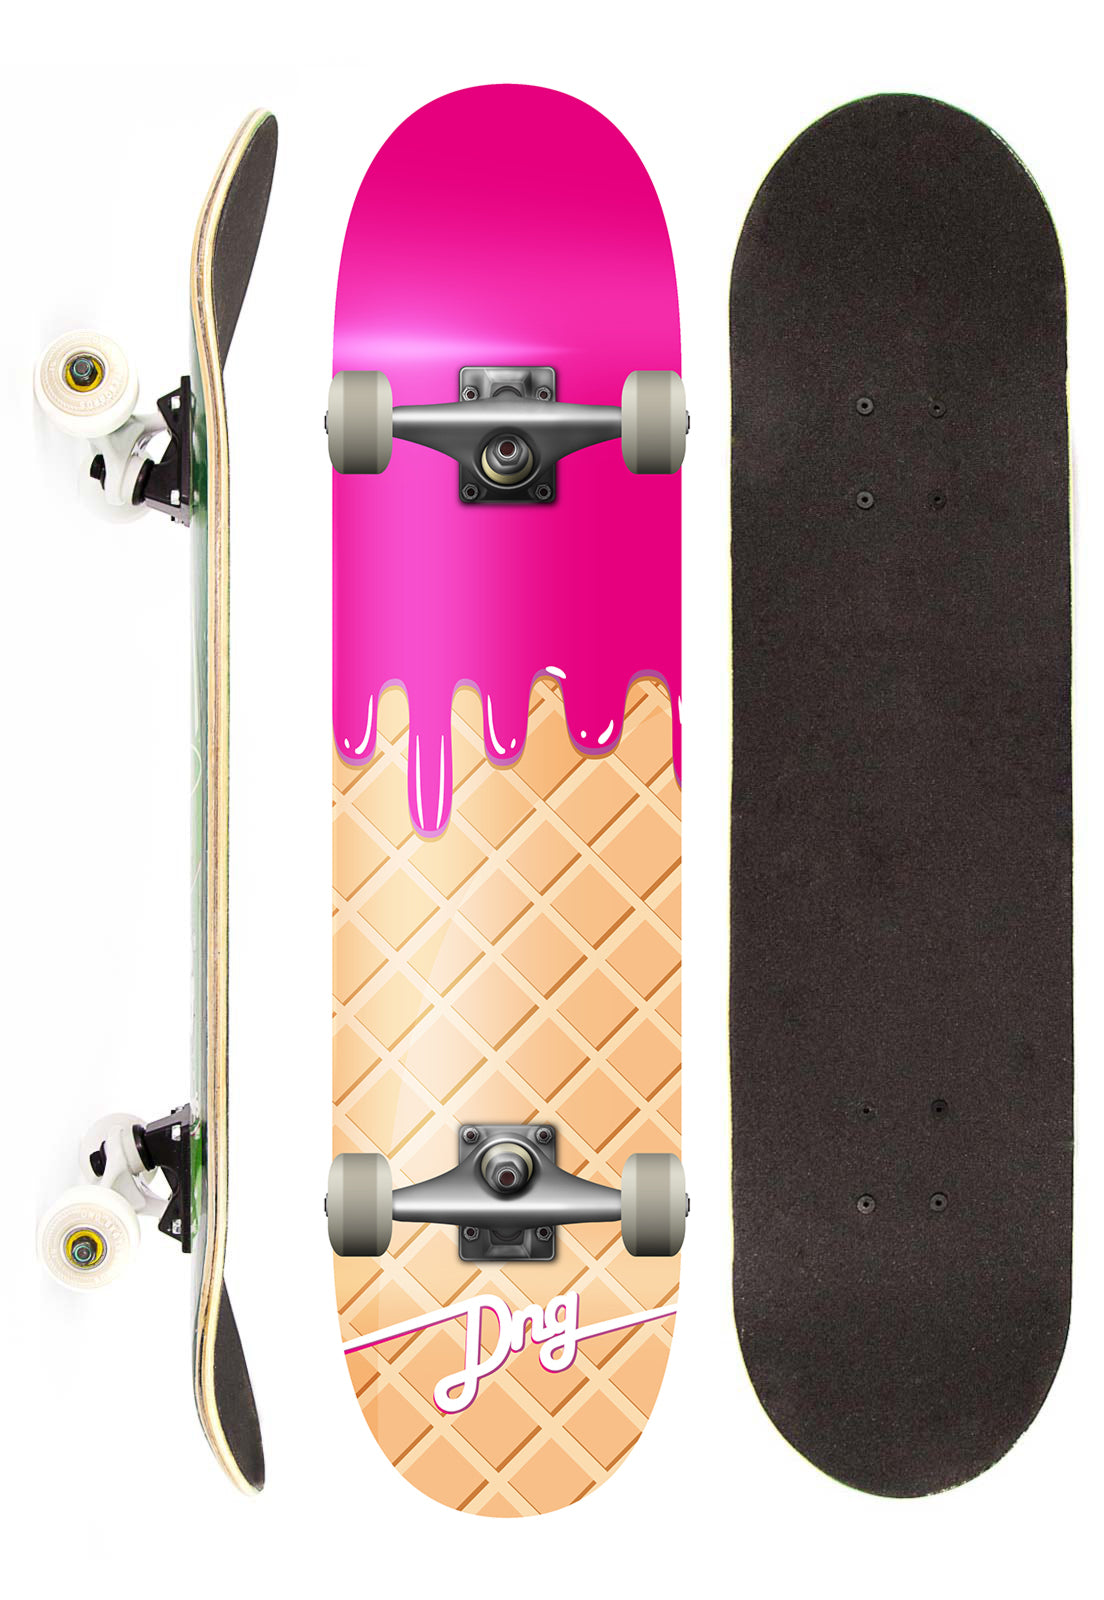 13c52bfaa319c Dng Skateboards Skate Completo DNG Profissional Ice Cream Rosa – Skate  Hangar